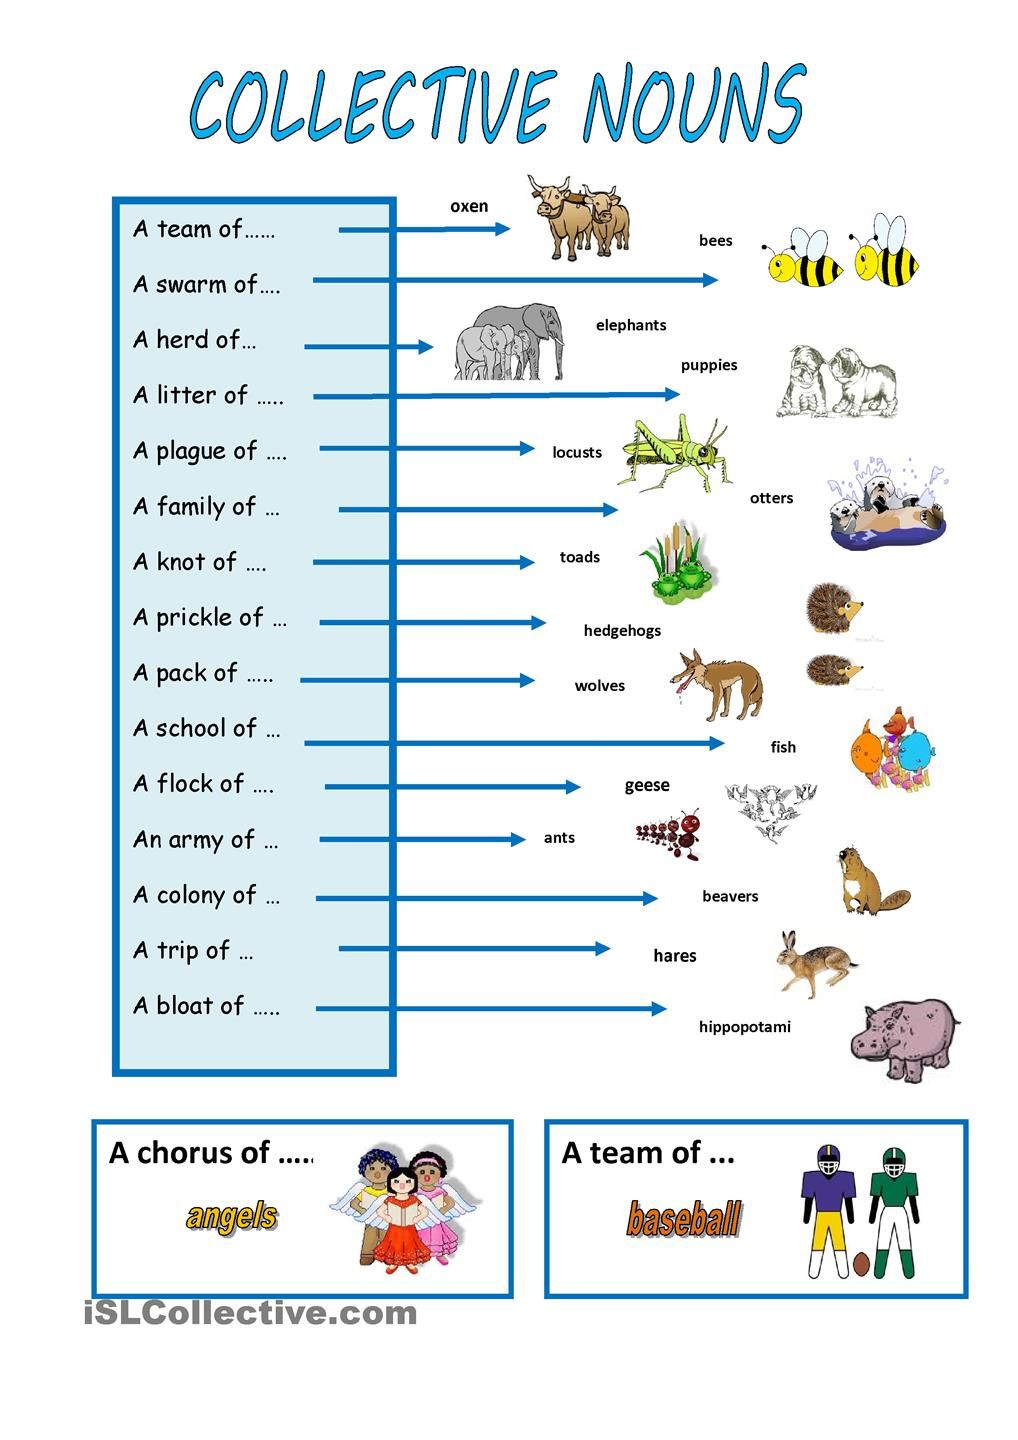 hight resolution of animal collective nouns - Google Search   Collective nouns